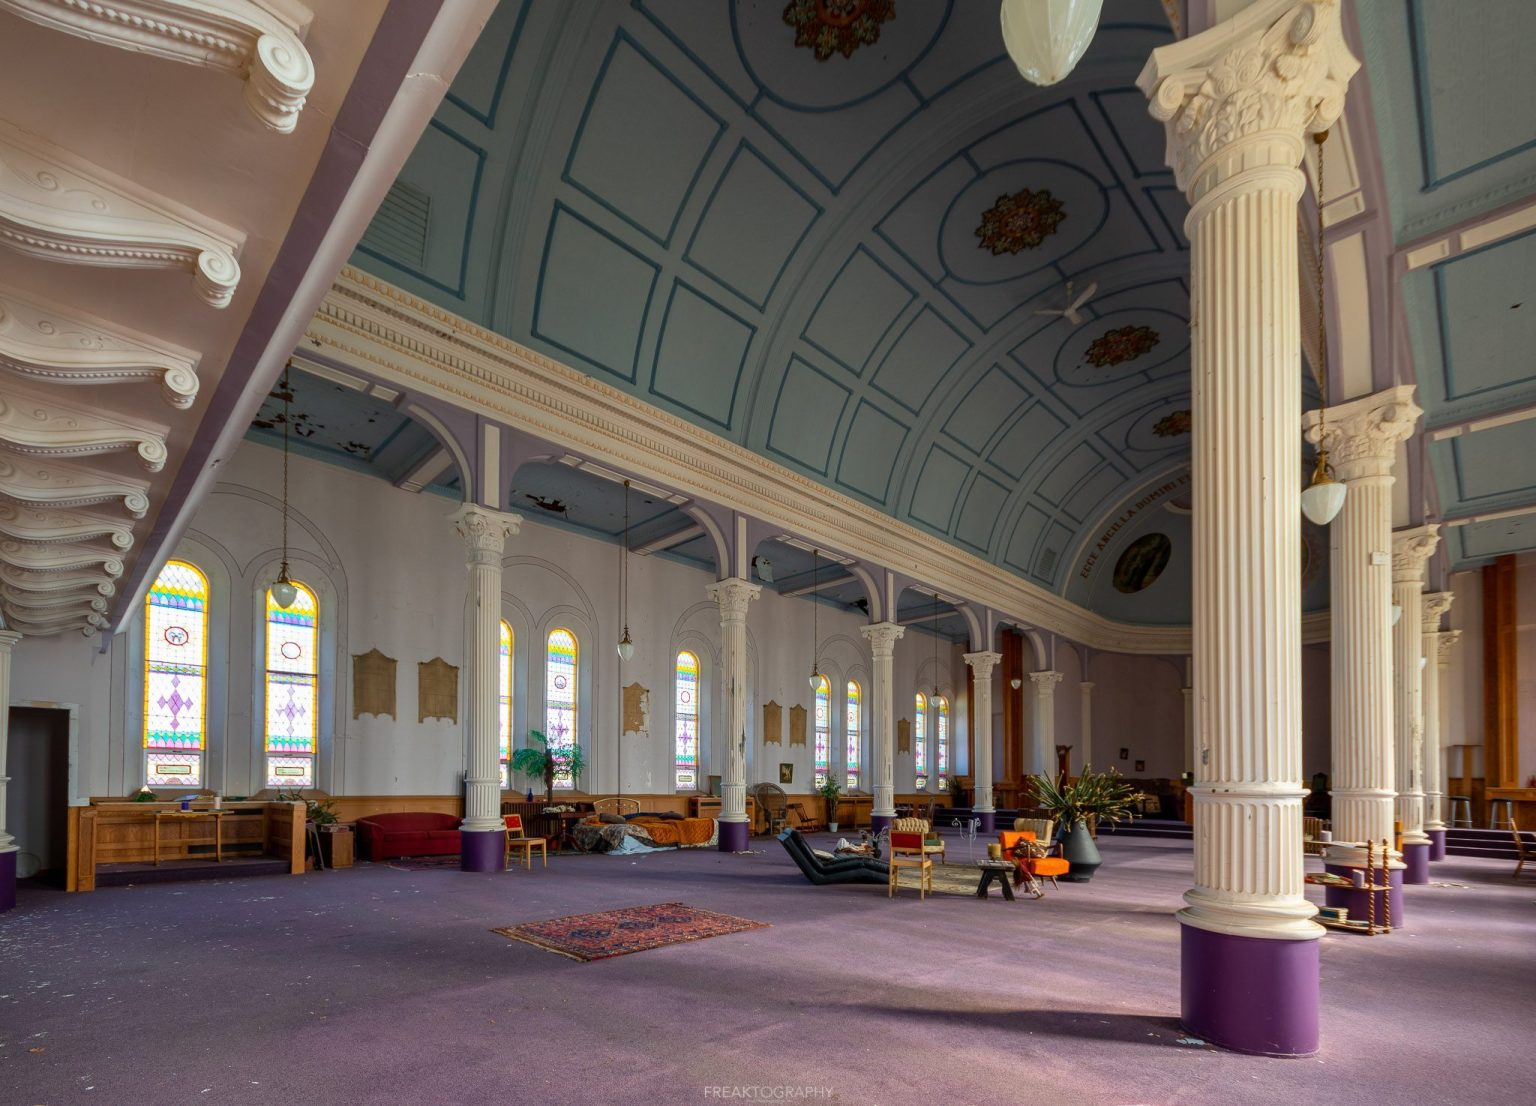 Abandoned Roman Catholic Cathedral Built in 1905